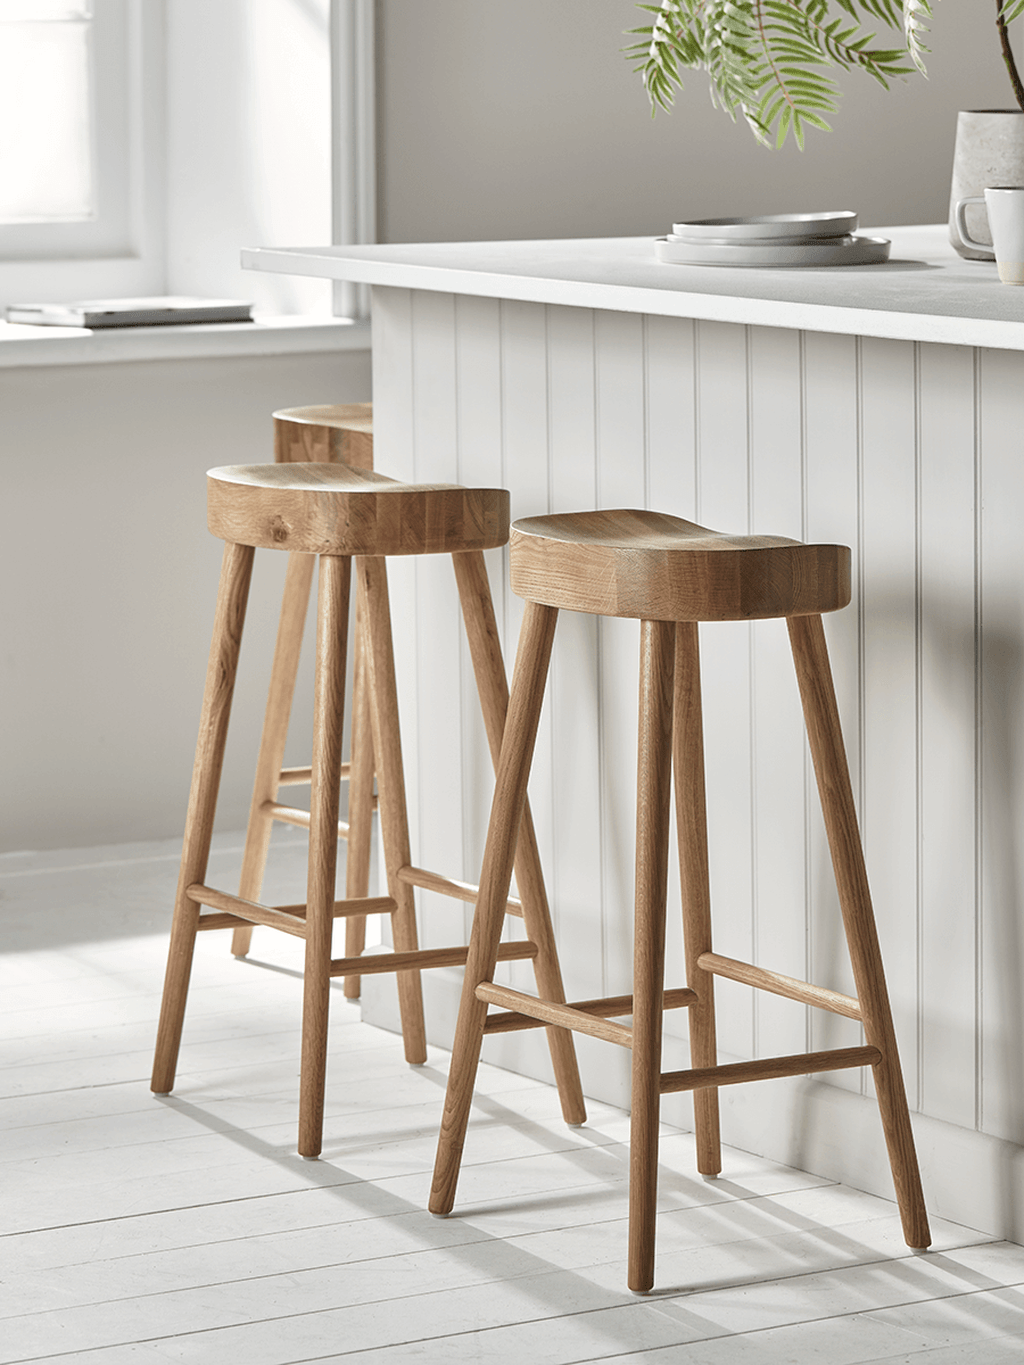 36 Perfect Bar Stools Design Ideas For Your Home In 2020 Kitchen